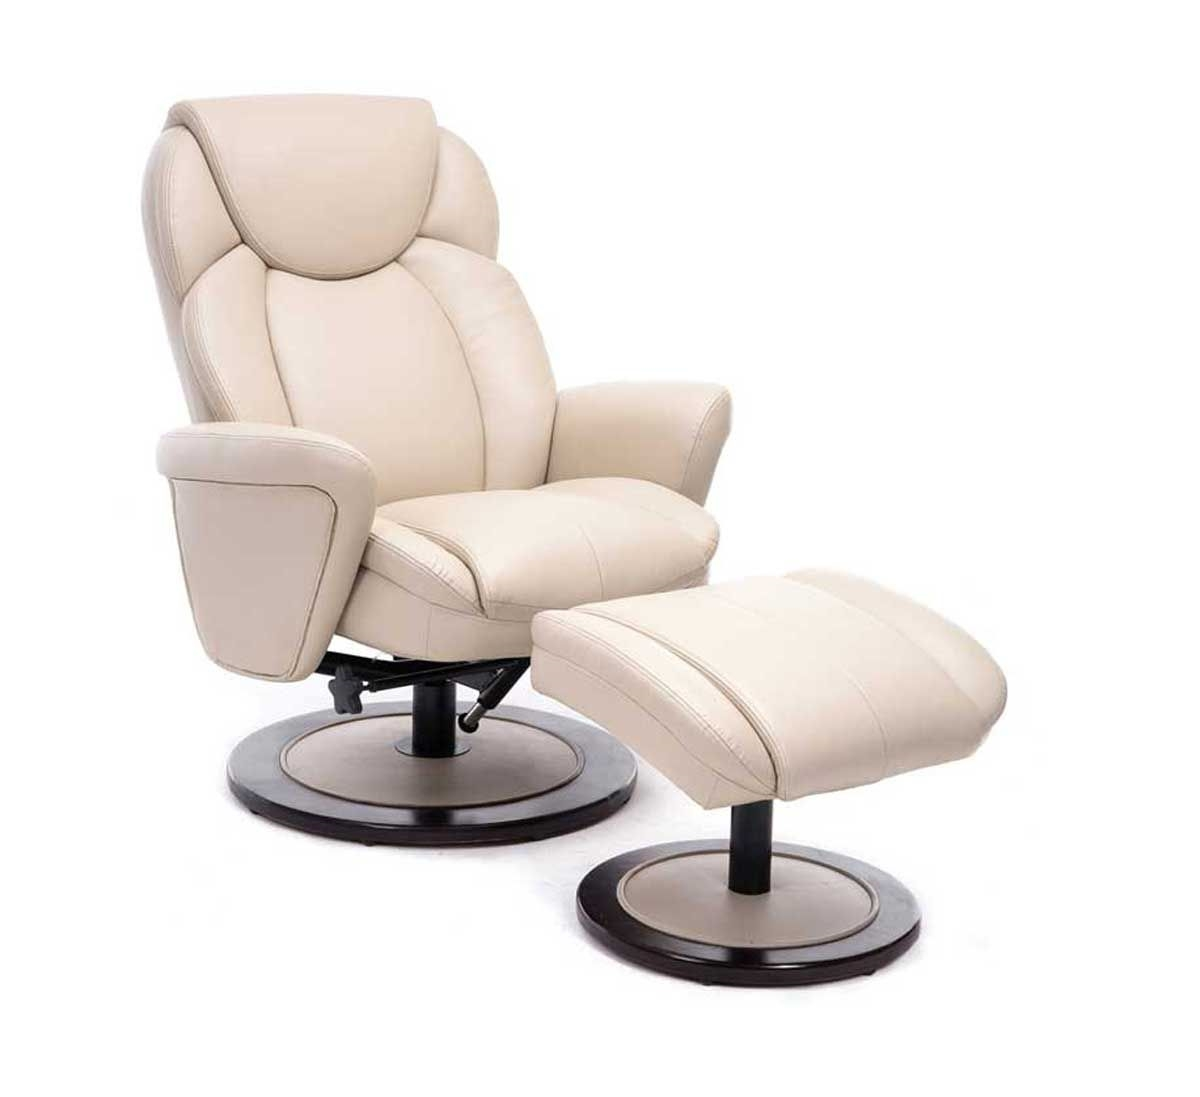 Picture Of DUVAL PUSH BACK RECLINER U0026 OTTOMAN Recliner And Ottoman B0